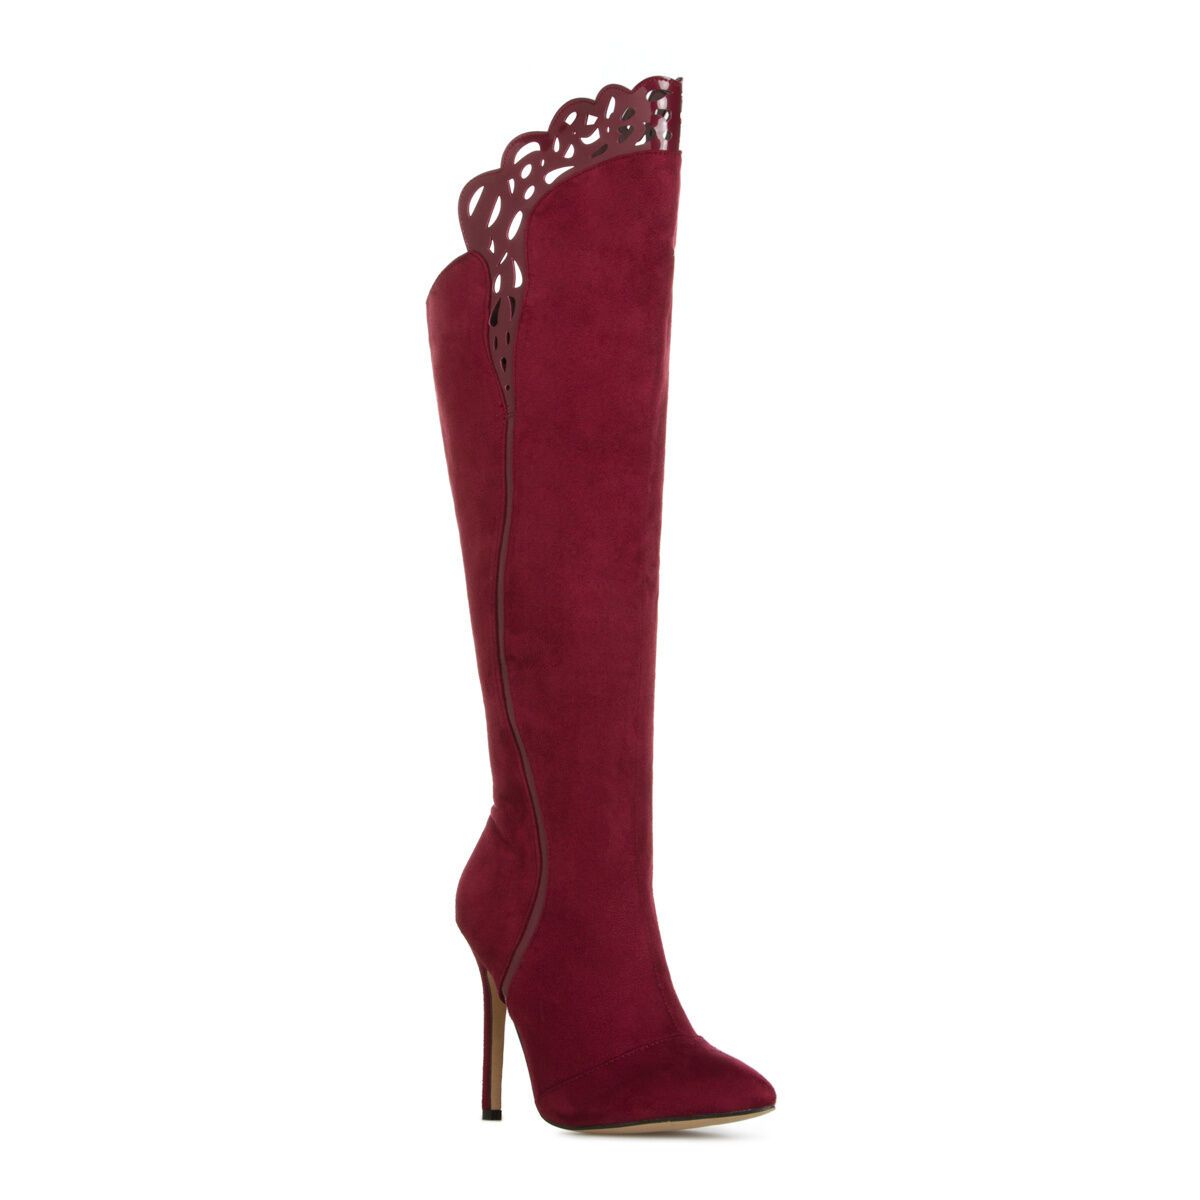 Wine / Burgundy Perforated Top Stiletto Heel Knee High Boots, US 10